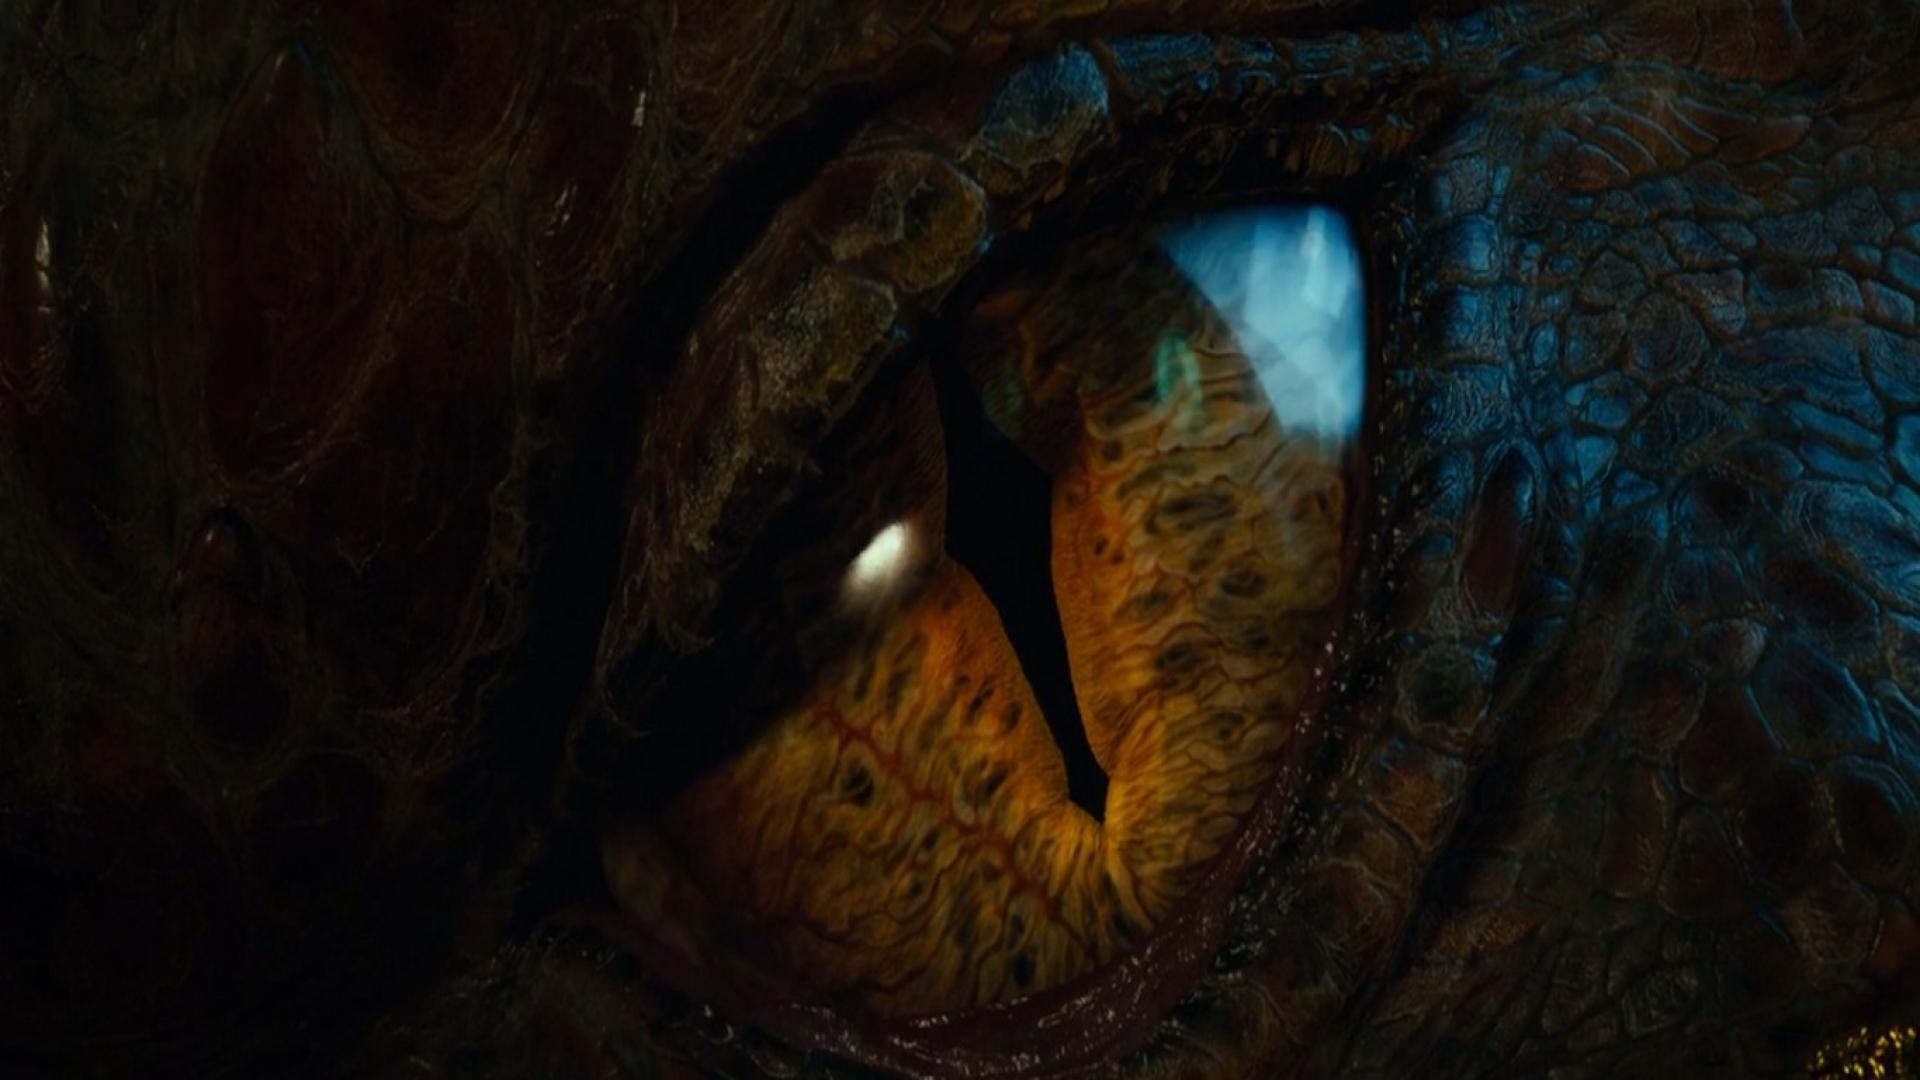 Eyes dragons the hobbit smaug wallpaper 64877 1920x1080